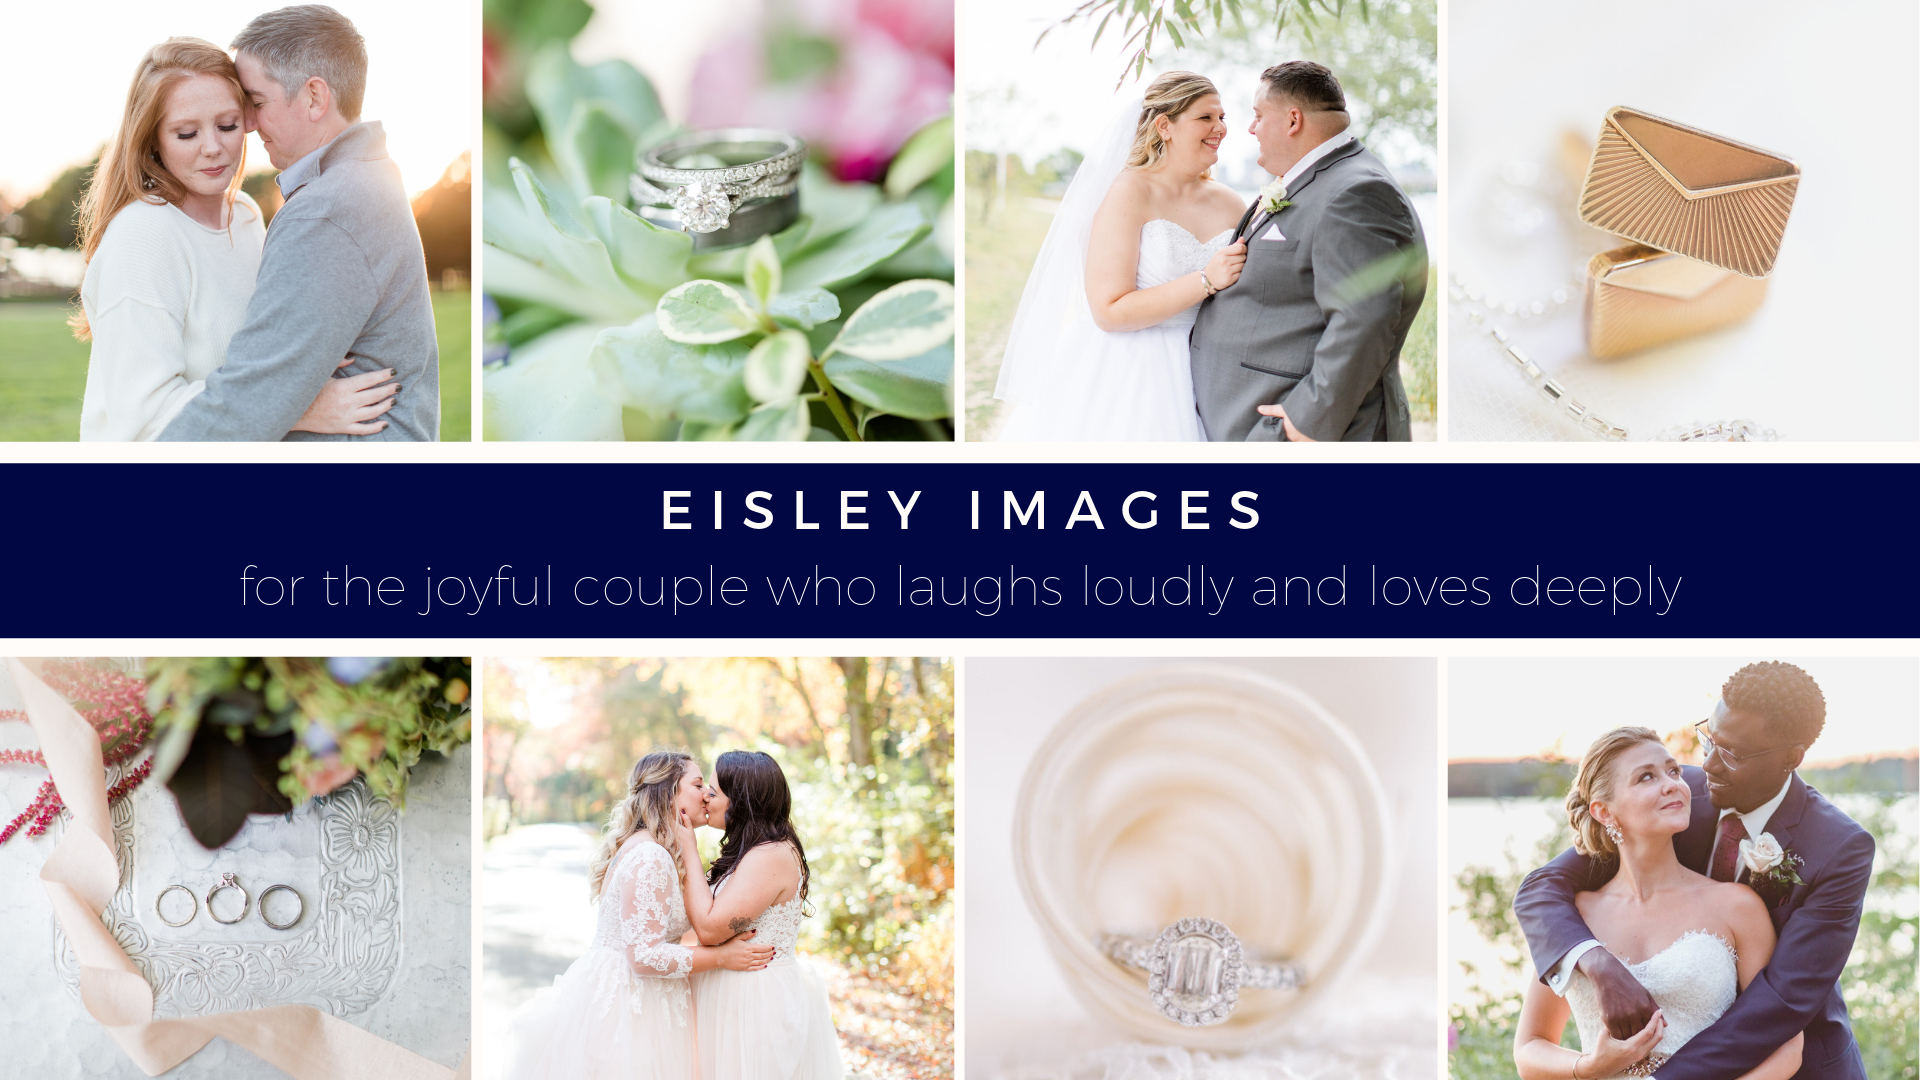 eisley images providence wedding photographer vendor award wedding wire